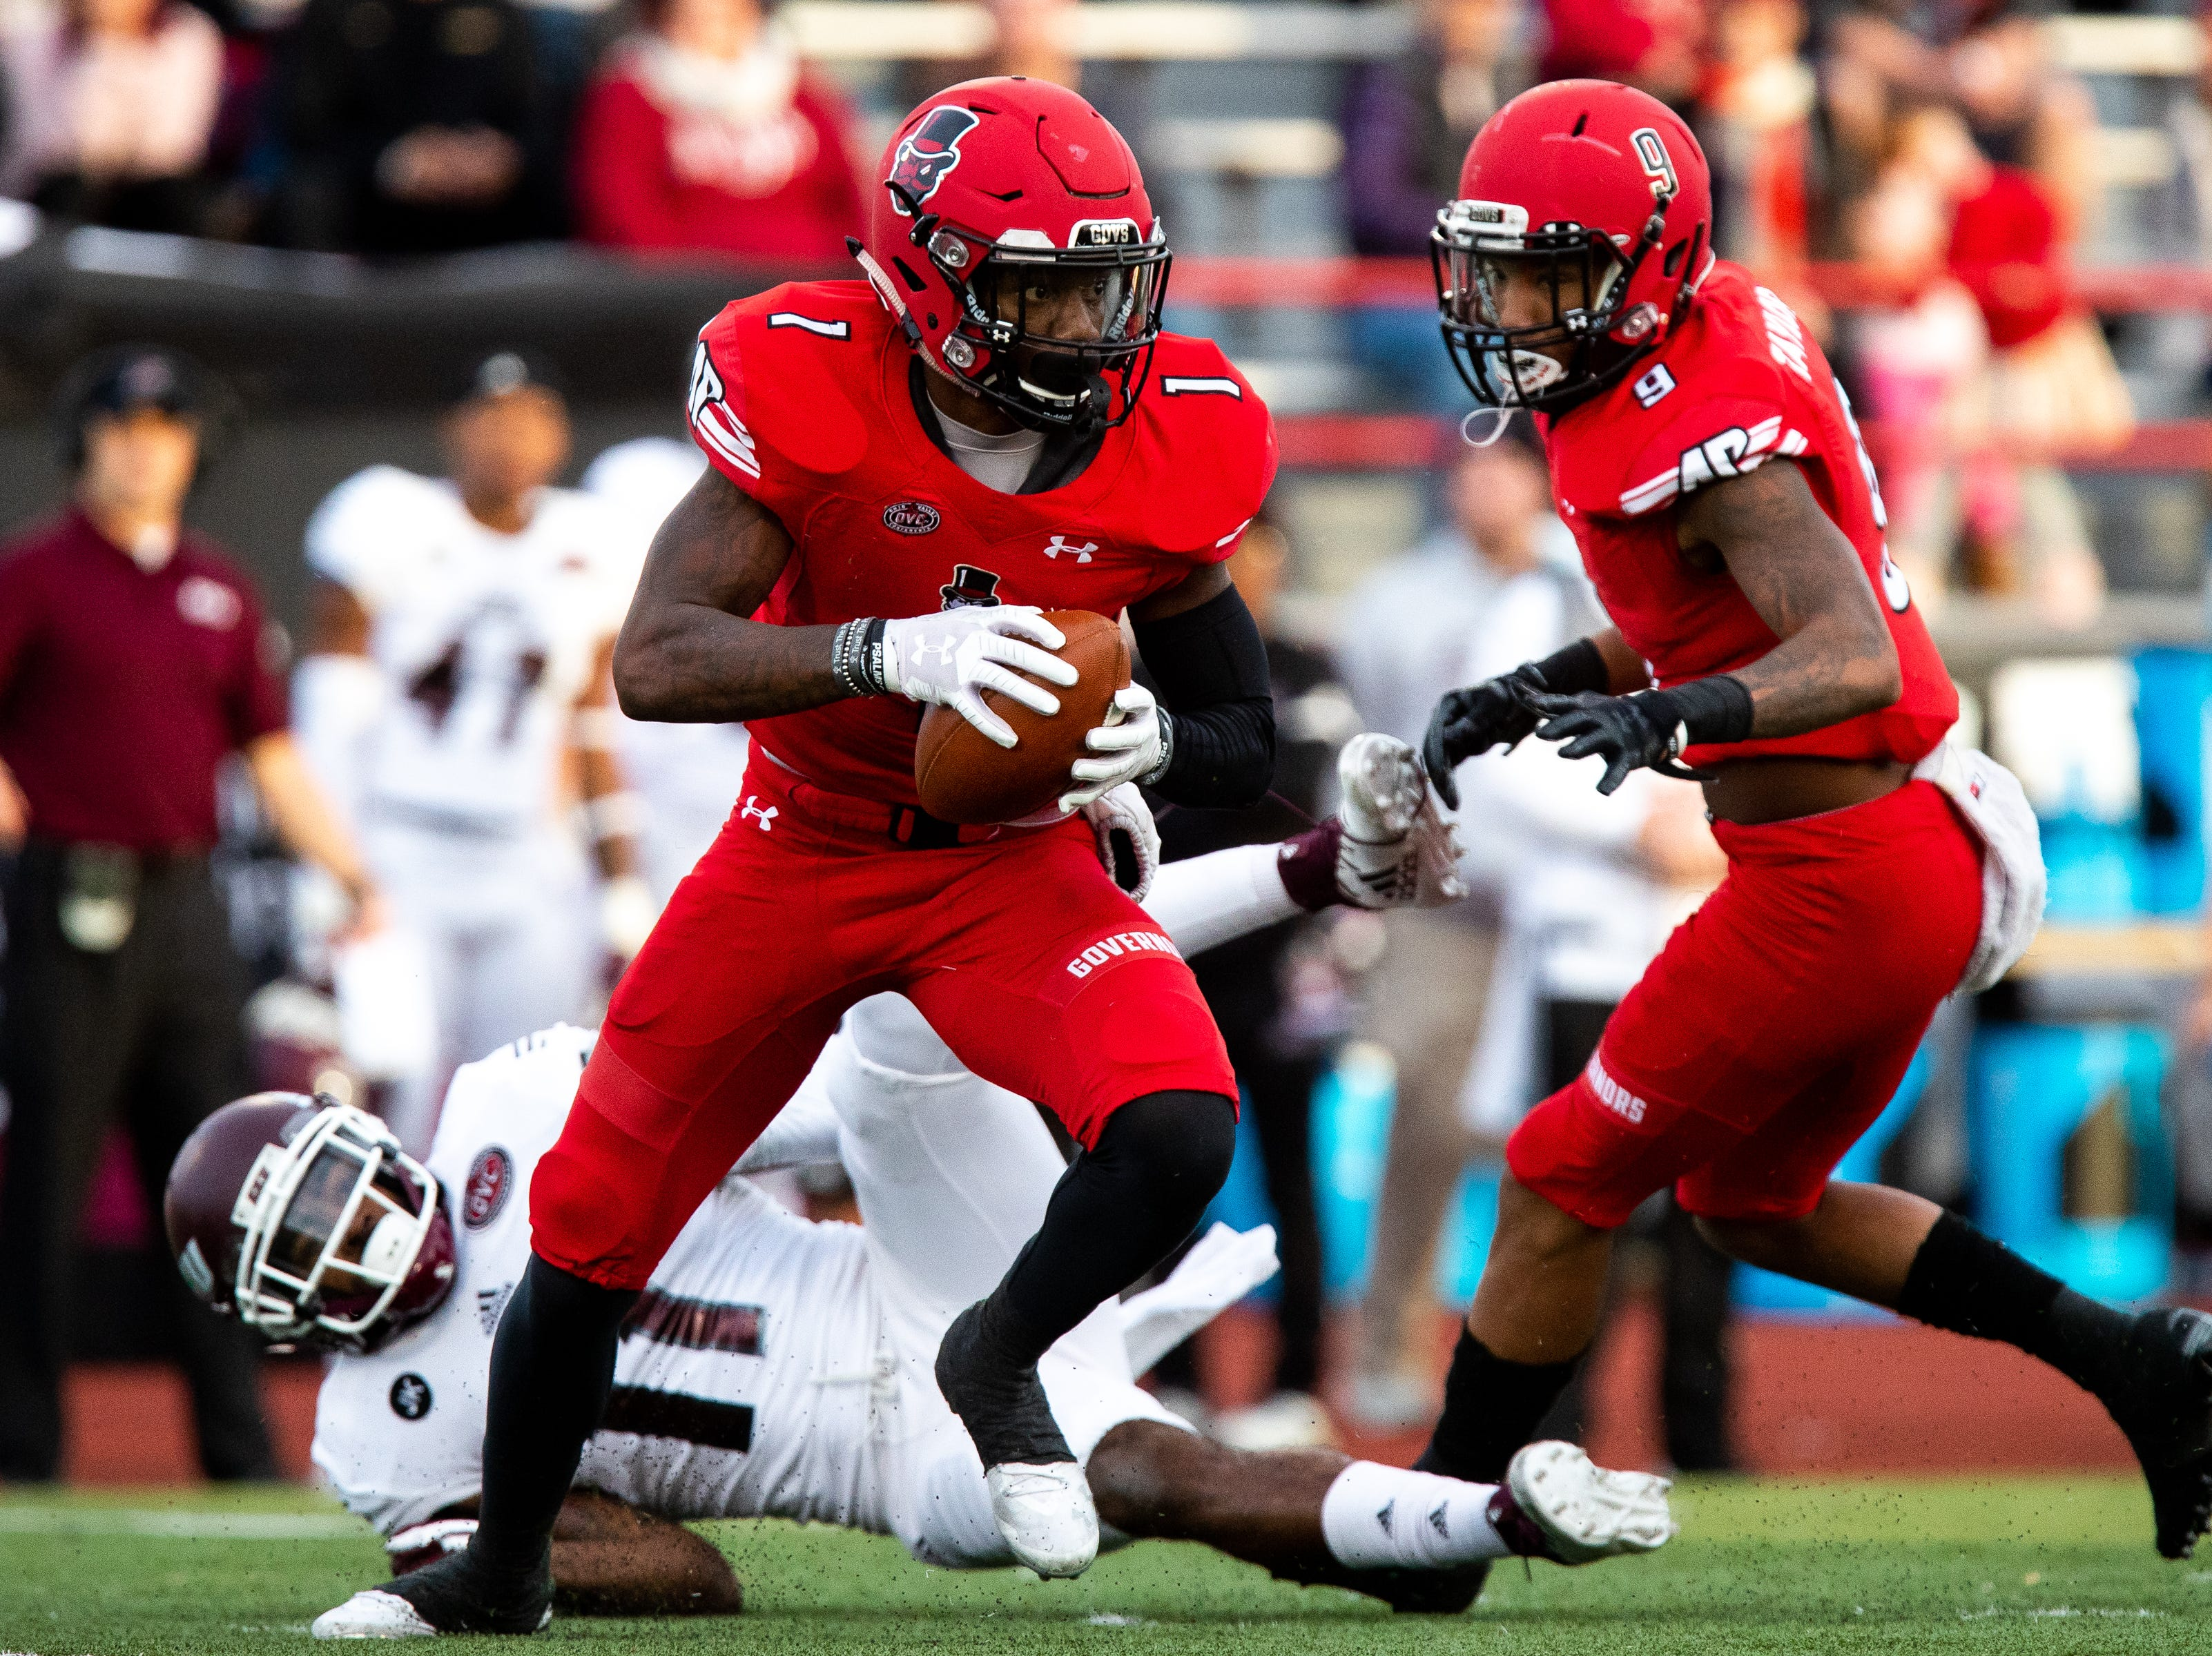 Austin Peay Governors defensive back Malik Davis (1) runs the ball after an interception for a touchdown during the first half at Fortera Stadium Saturday, Nov. 3, 2018, in Clarksville, Tenn.